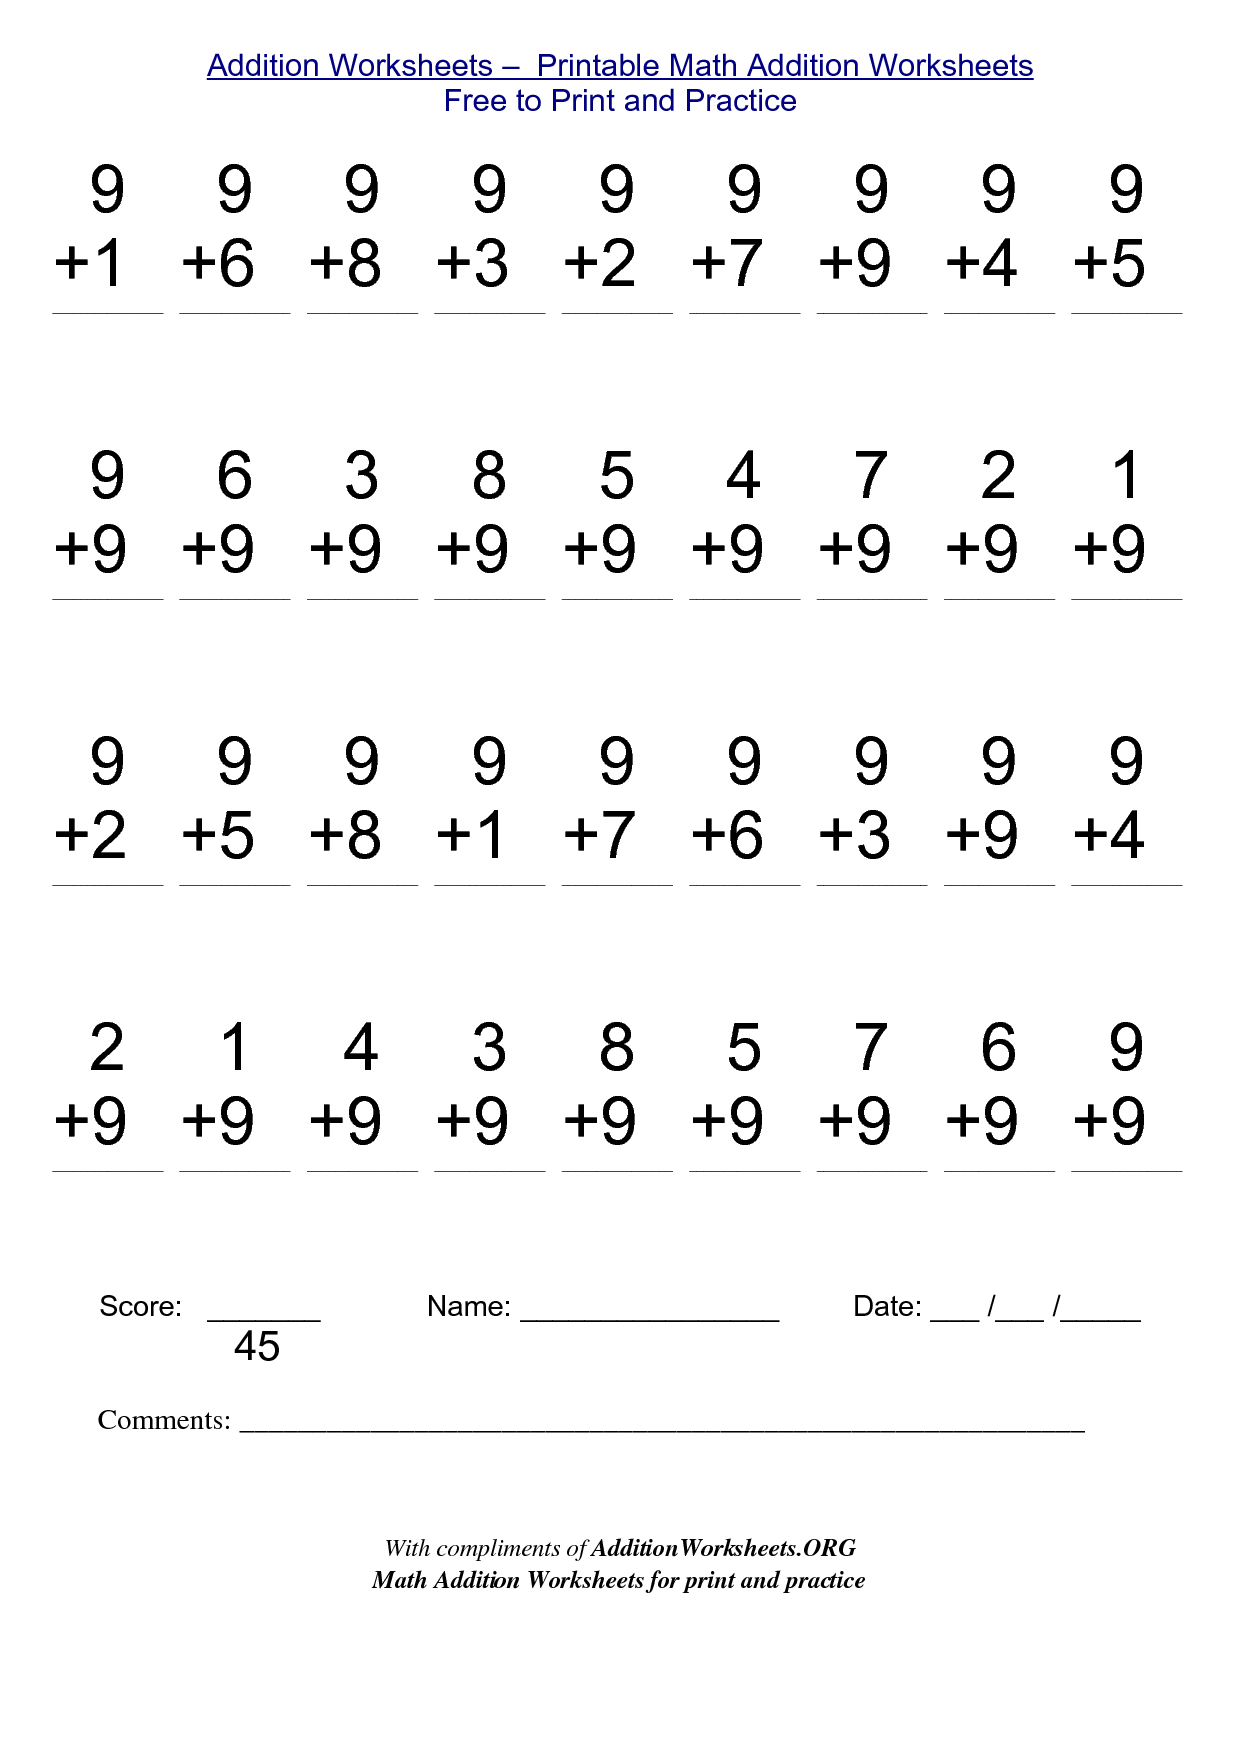 image regarding Printable Math Worksheets for 2nd Grade named Math Worksheets for Free of charge towards Print -  ME Math